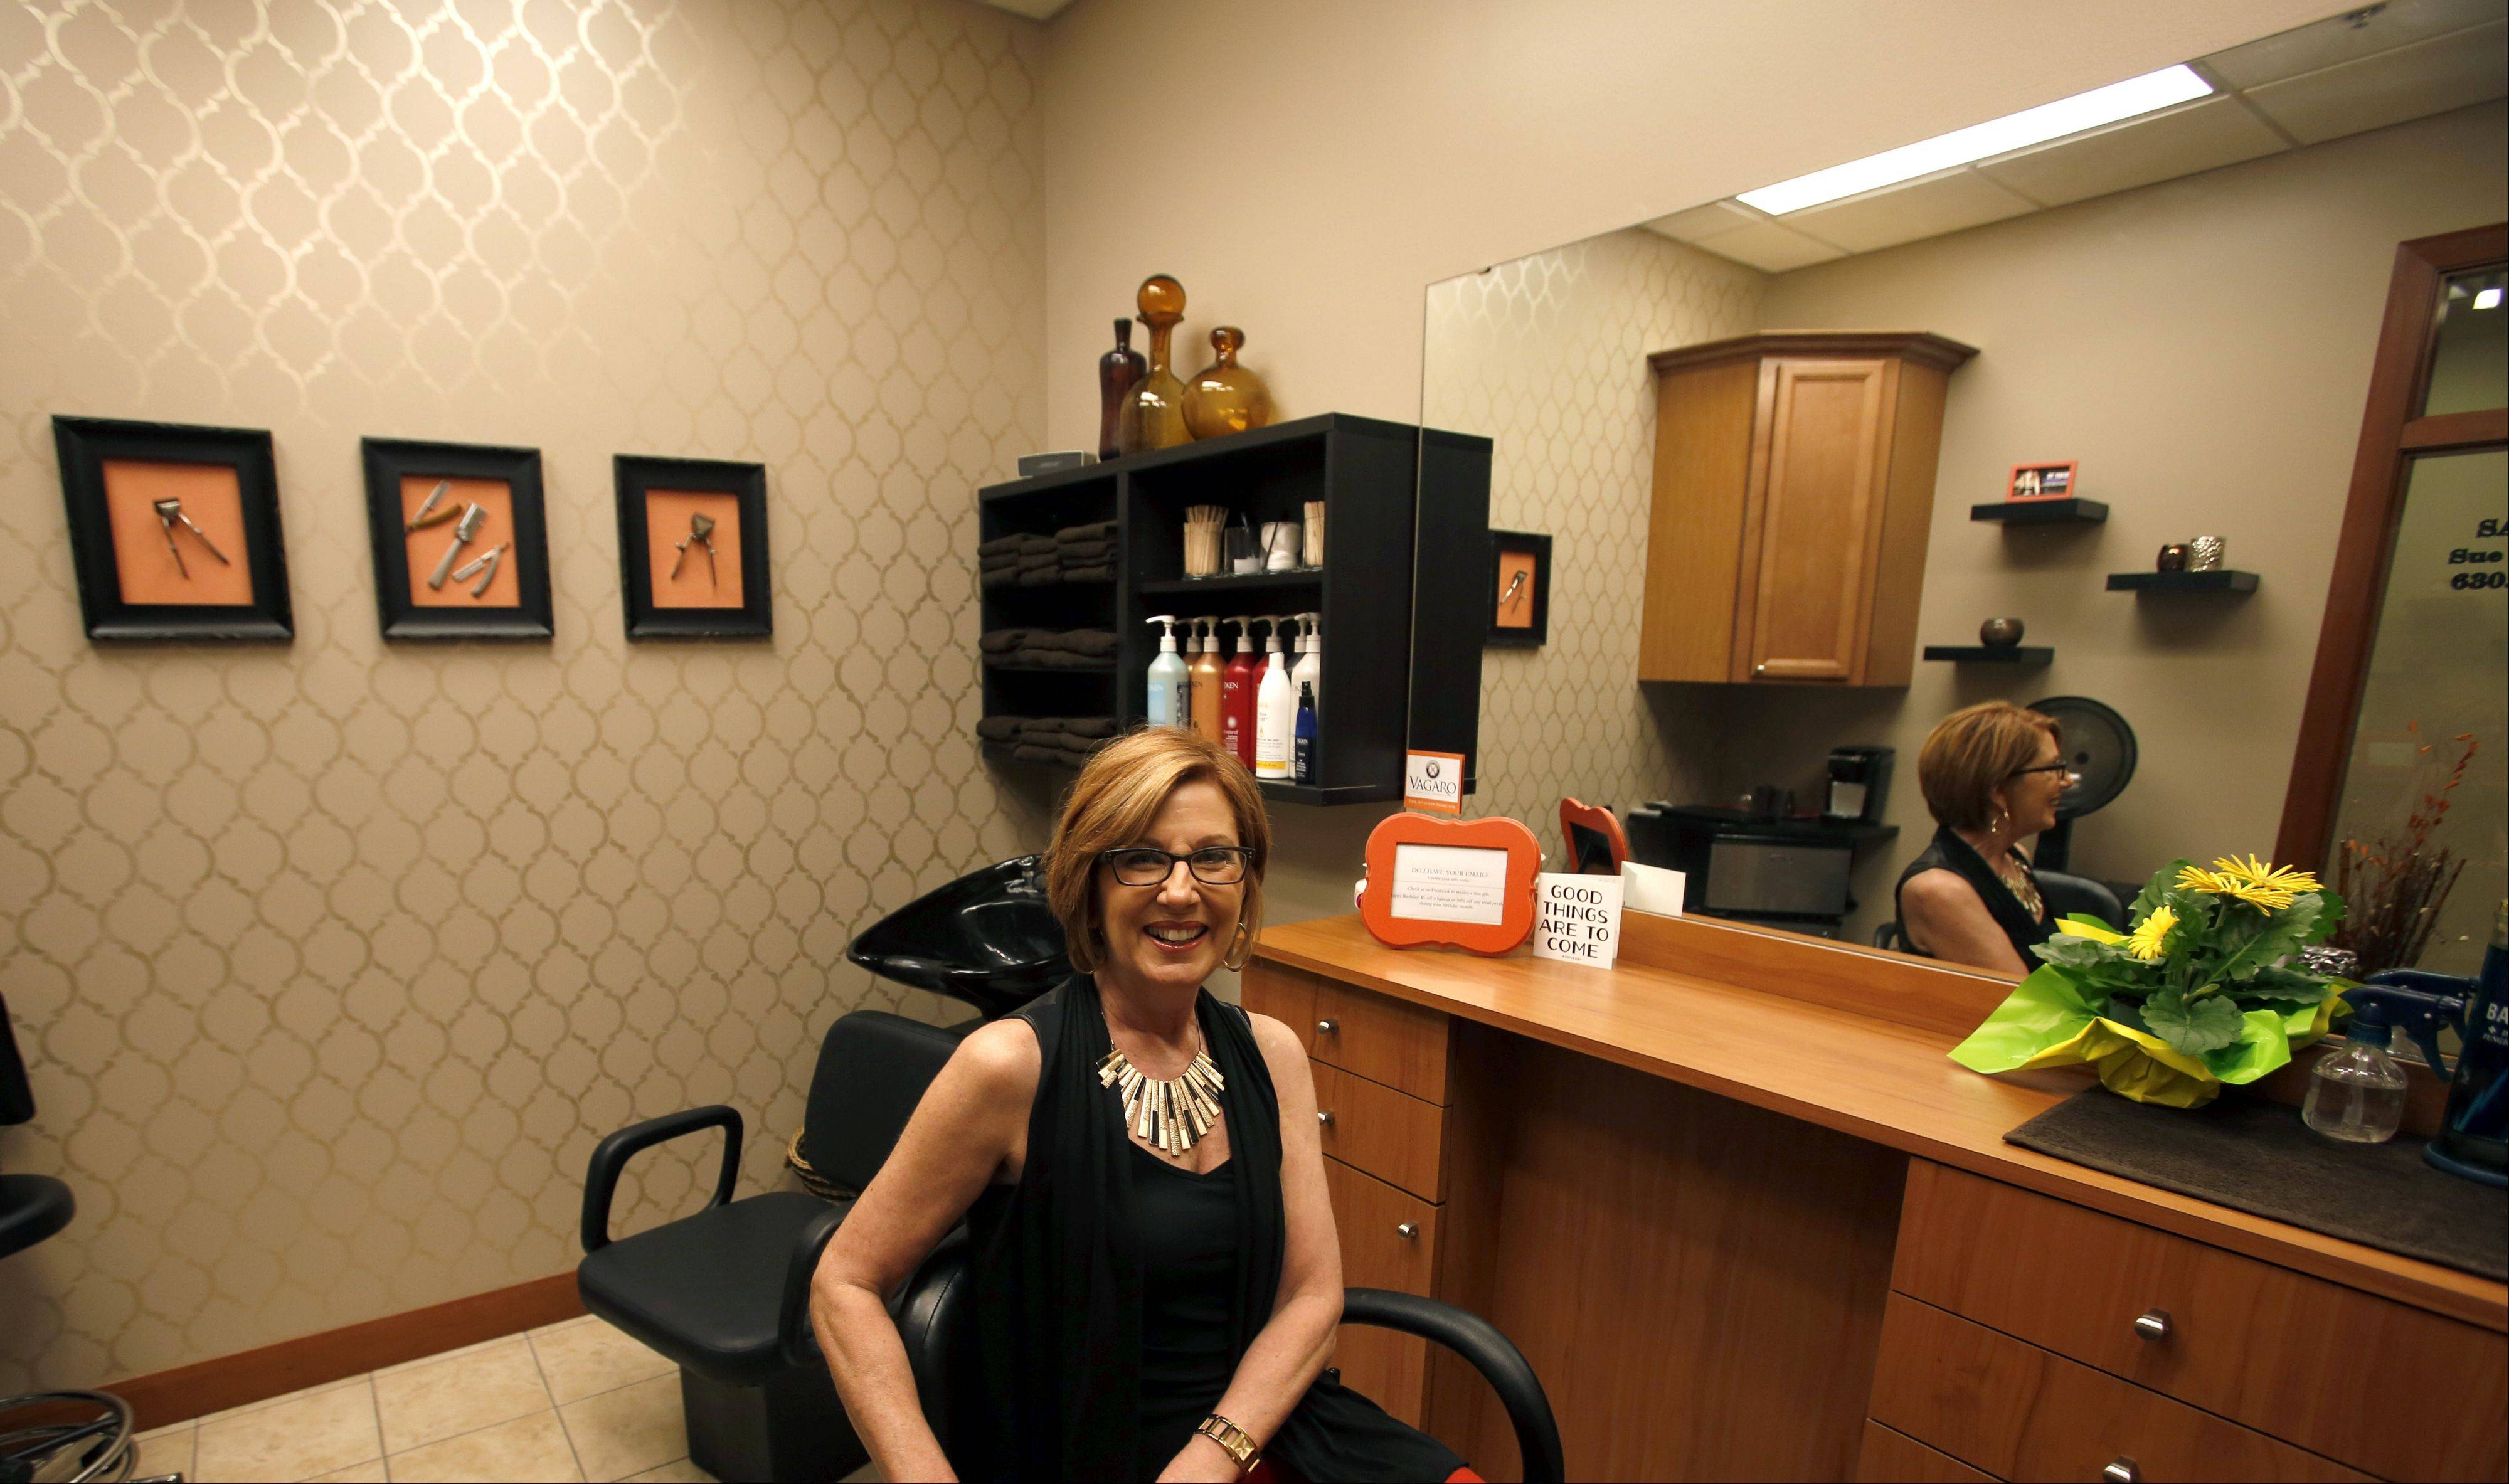 Stylist Sue Putignano recently opened Salon 105 in the InStyle Salon suites in Algonquin.